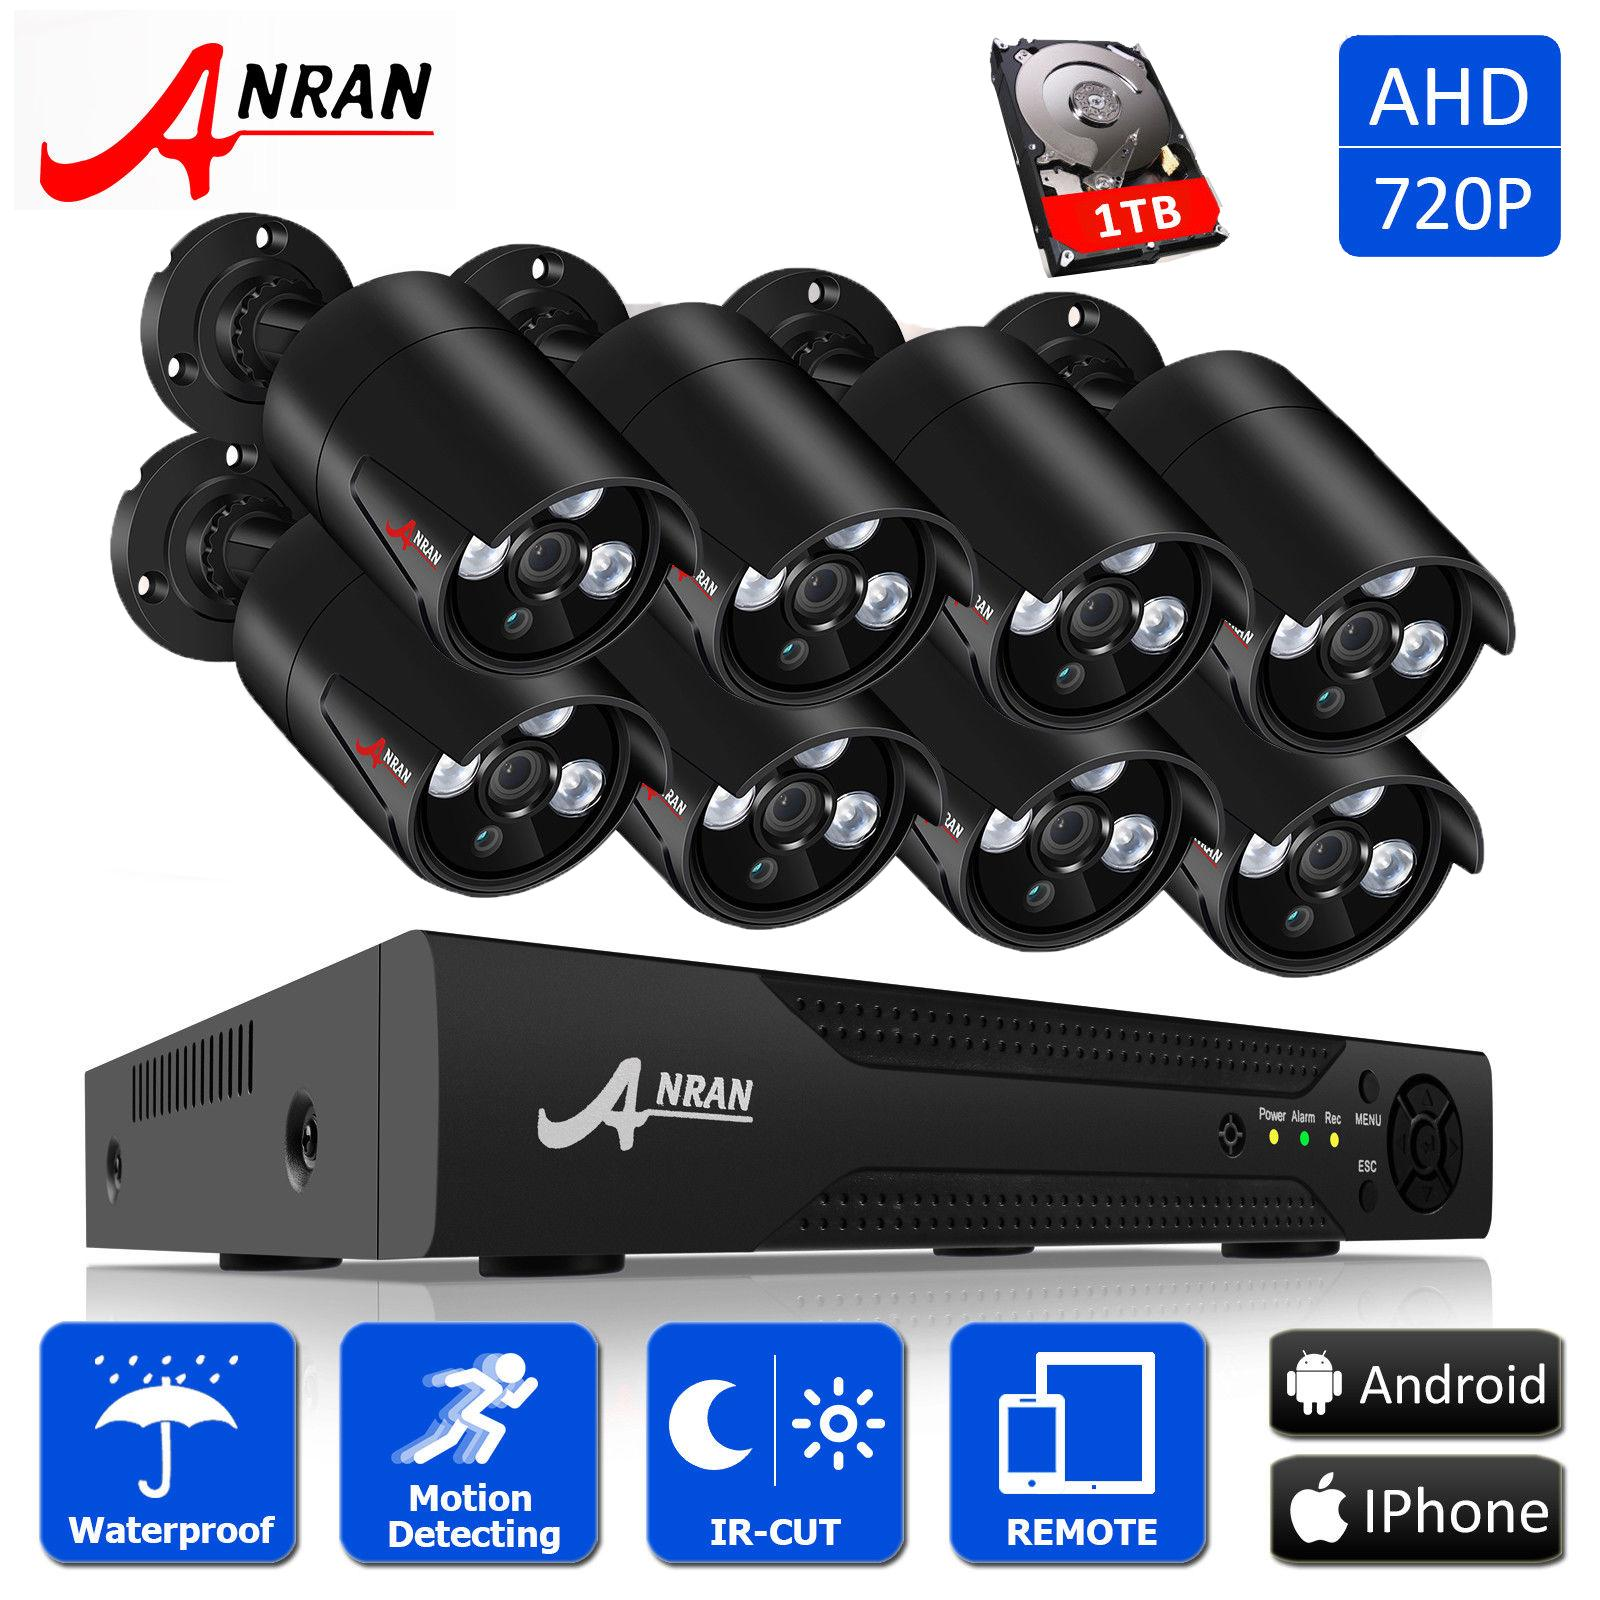 Anran 8Ch Security Camera System Ahd 1080N Hdmi Dvr 720P 1800Tvl Ir Outdoor Camera Home Video Surveillance Kits Shopping